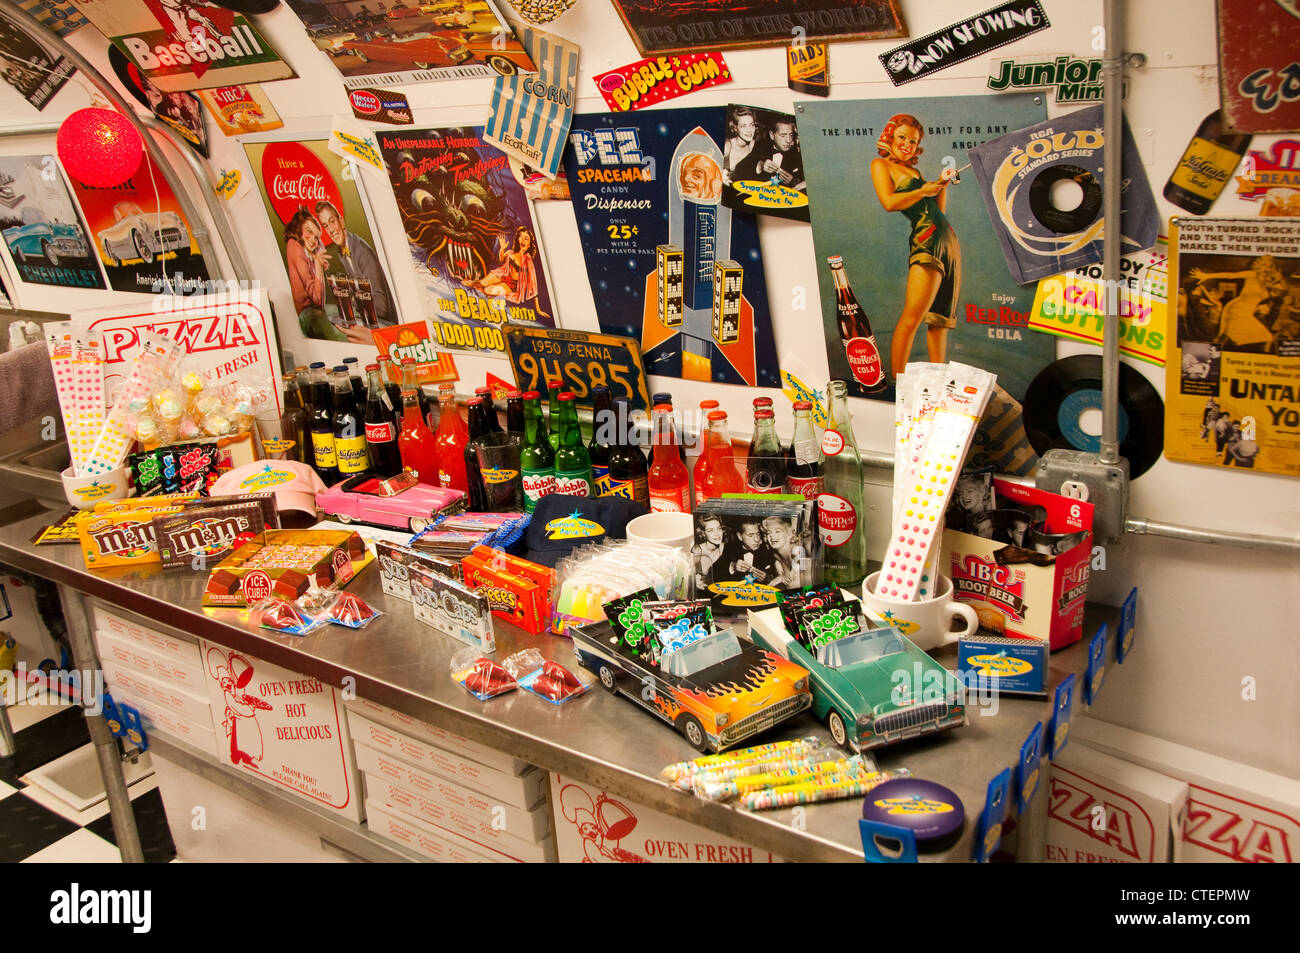 USA Utah Escalante, nostalgic movie candy at the Shooting Star Drive-In. - Stock Image